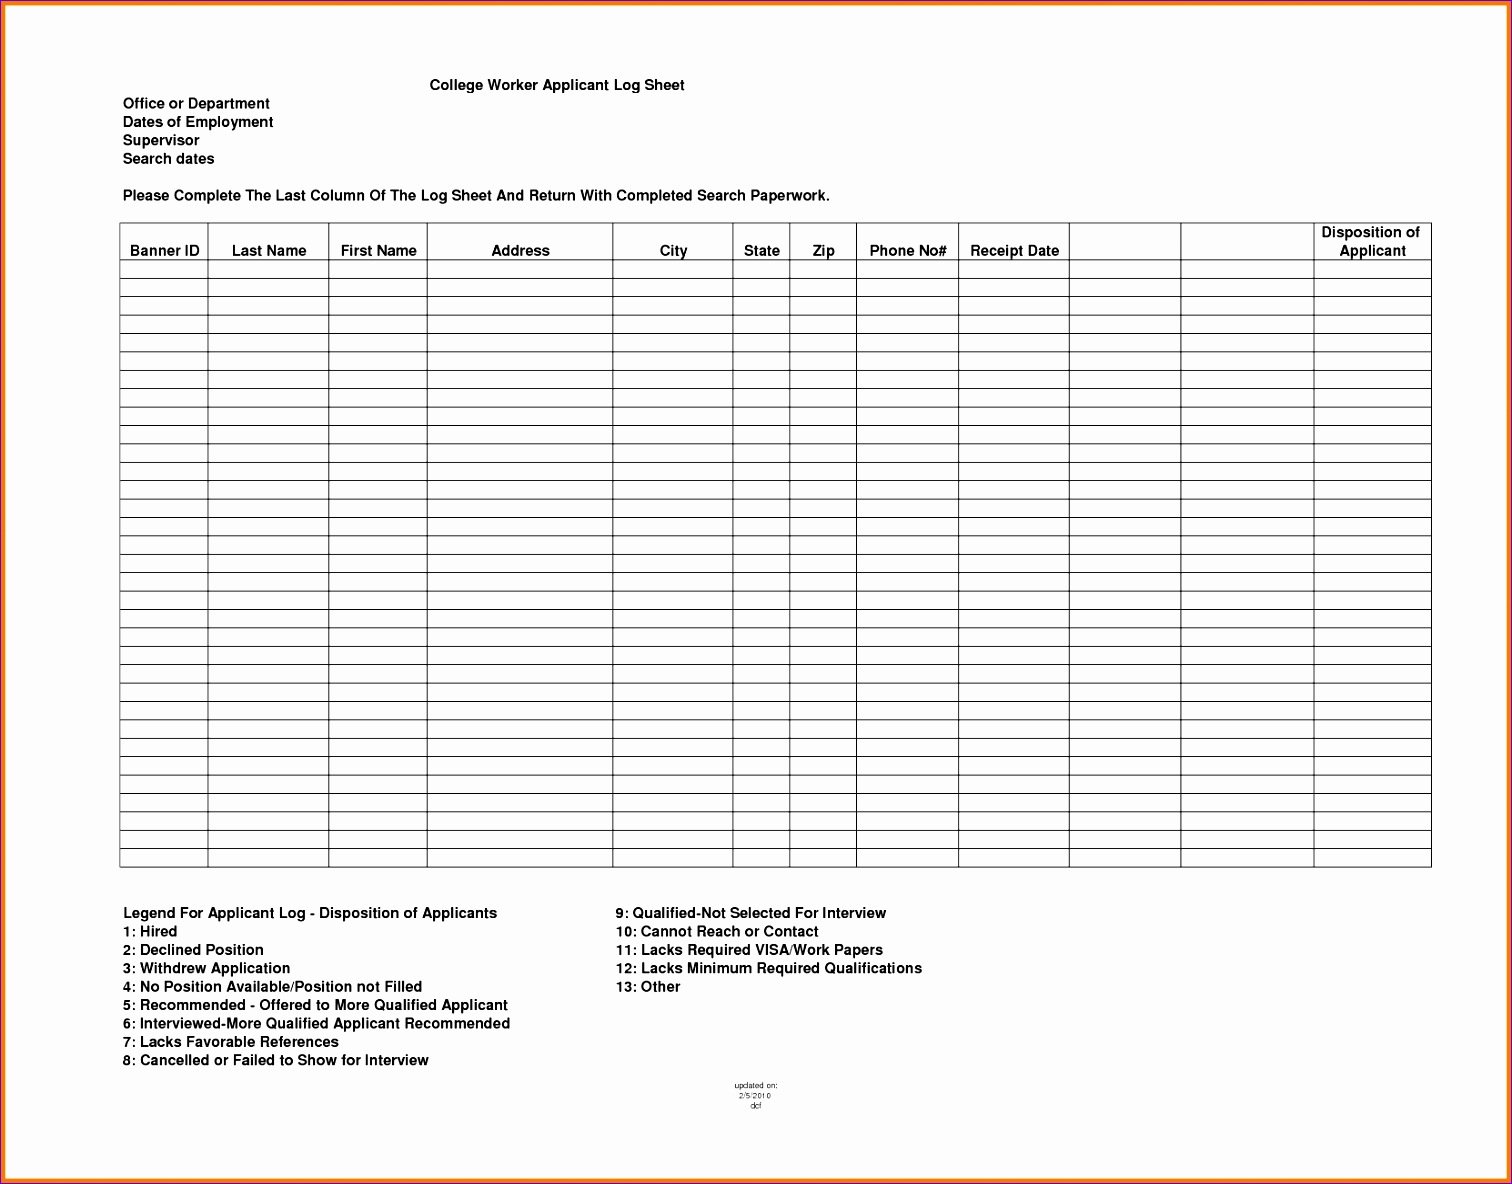 sign up sheet template word 15121184